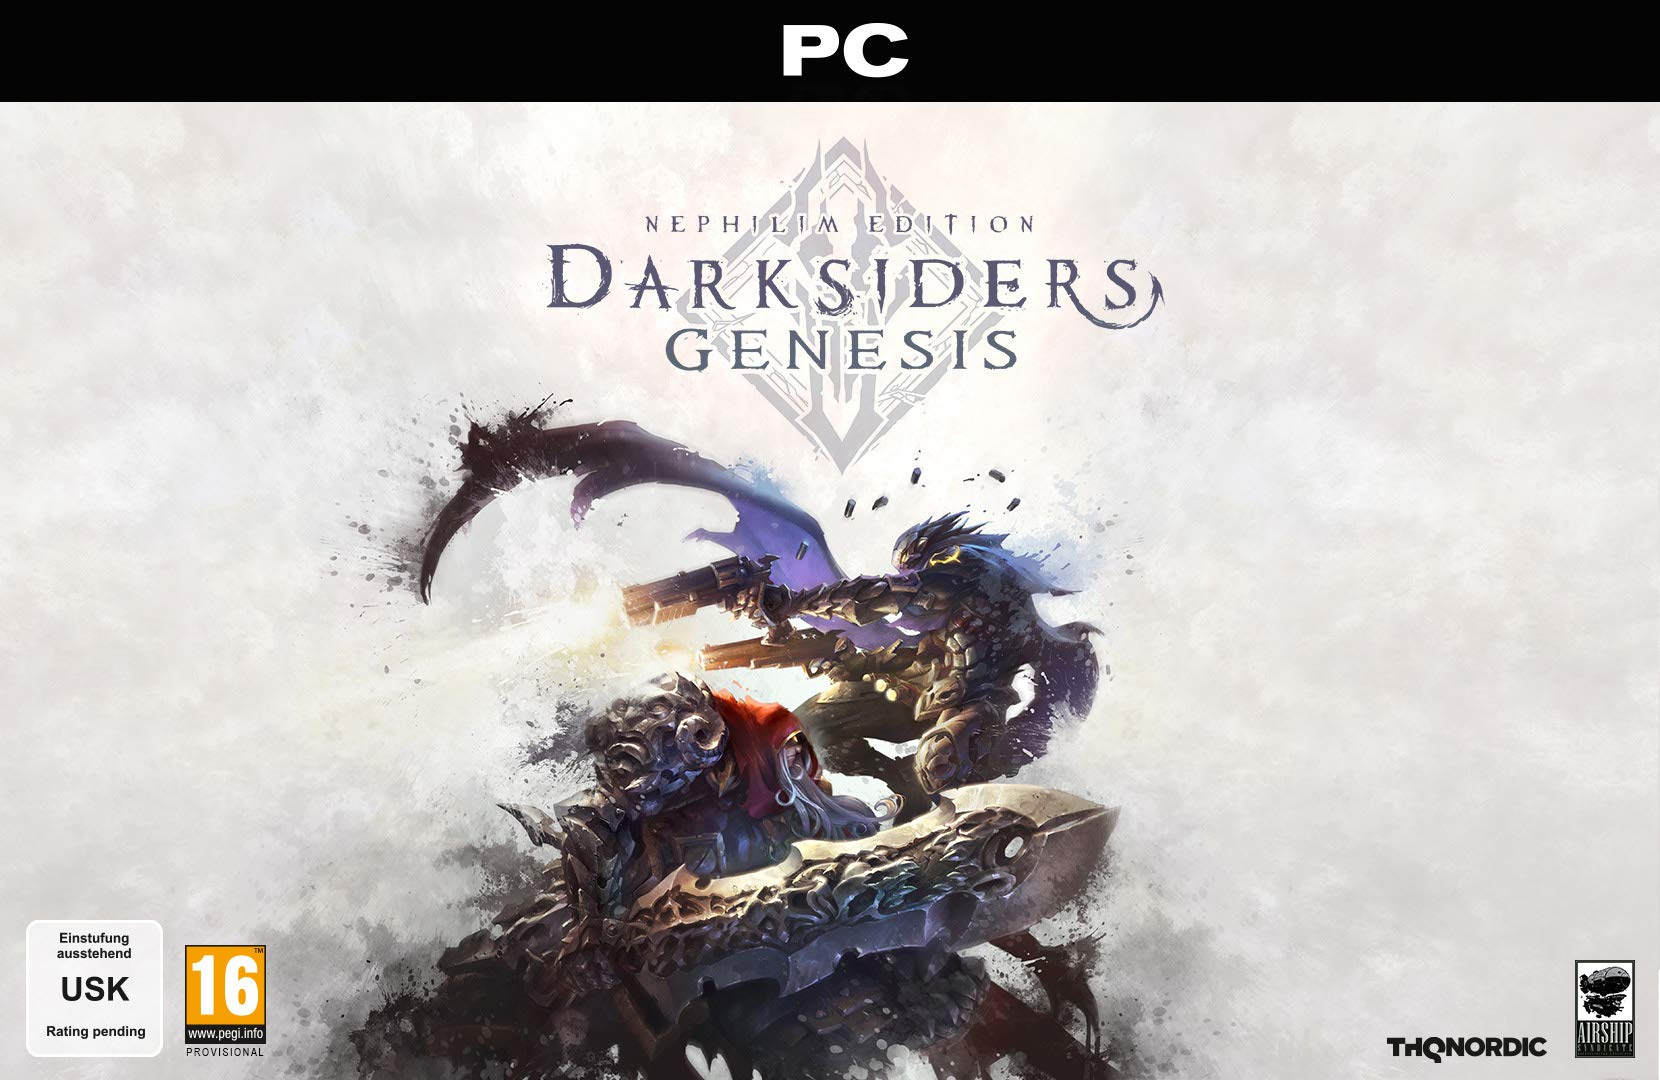 Darksiders Genesis - Nephilim Edition - PC Nephilim Edition by THQ Nordic